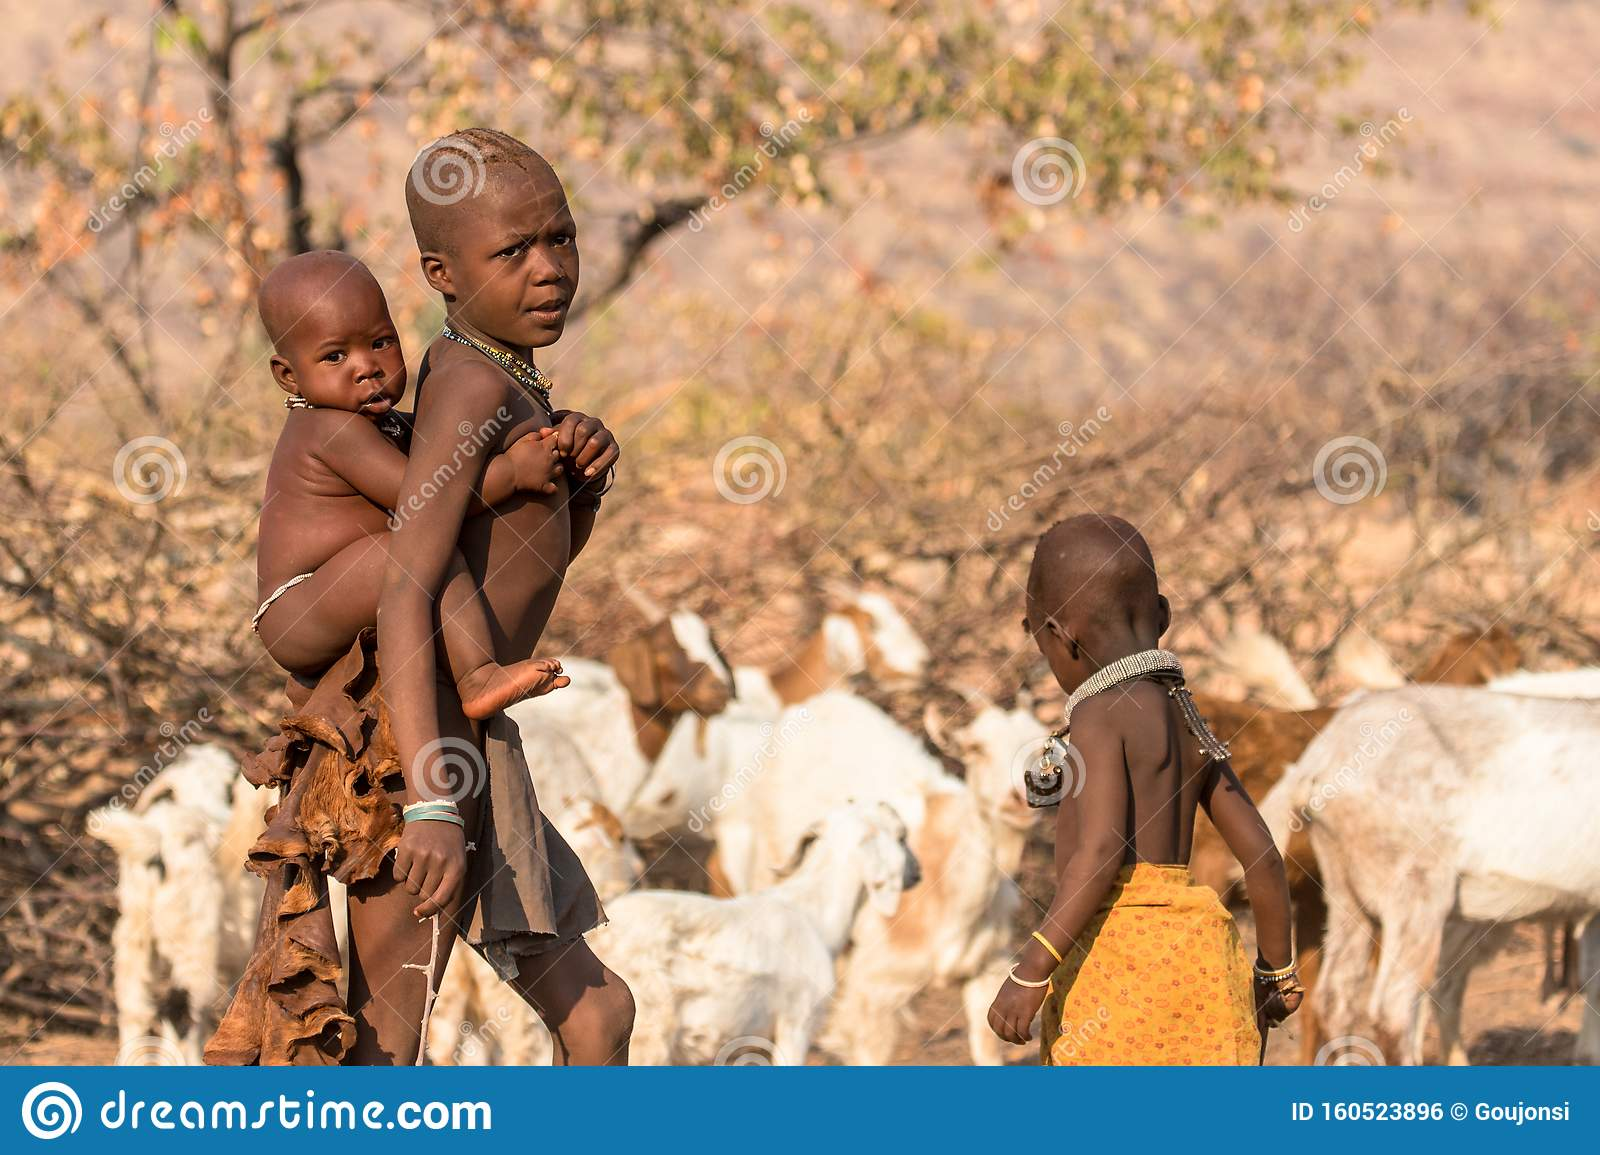 Portrait of a Himba girl looking after the goat herd carrying a baby on her back, Epupa falls, Namibia